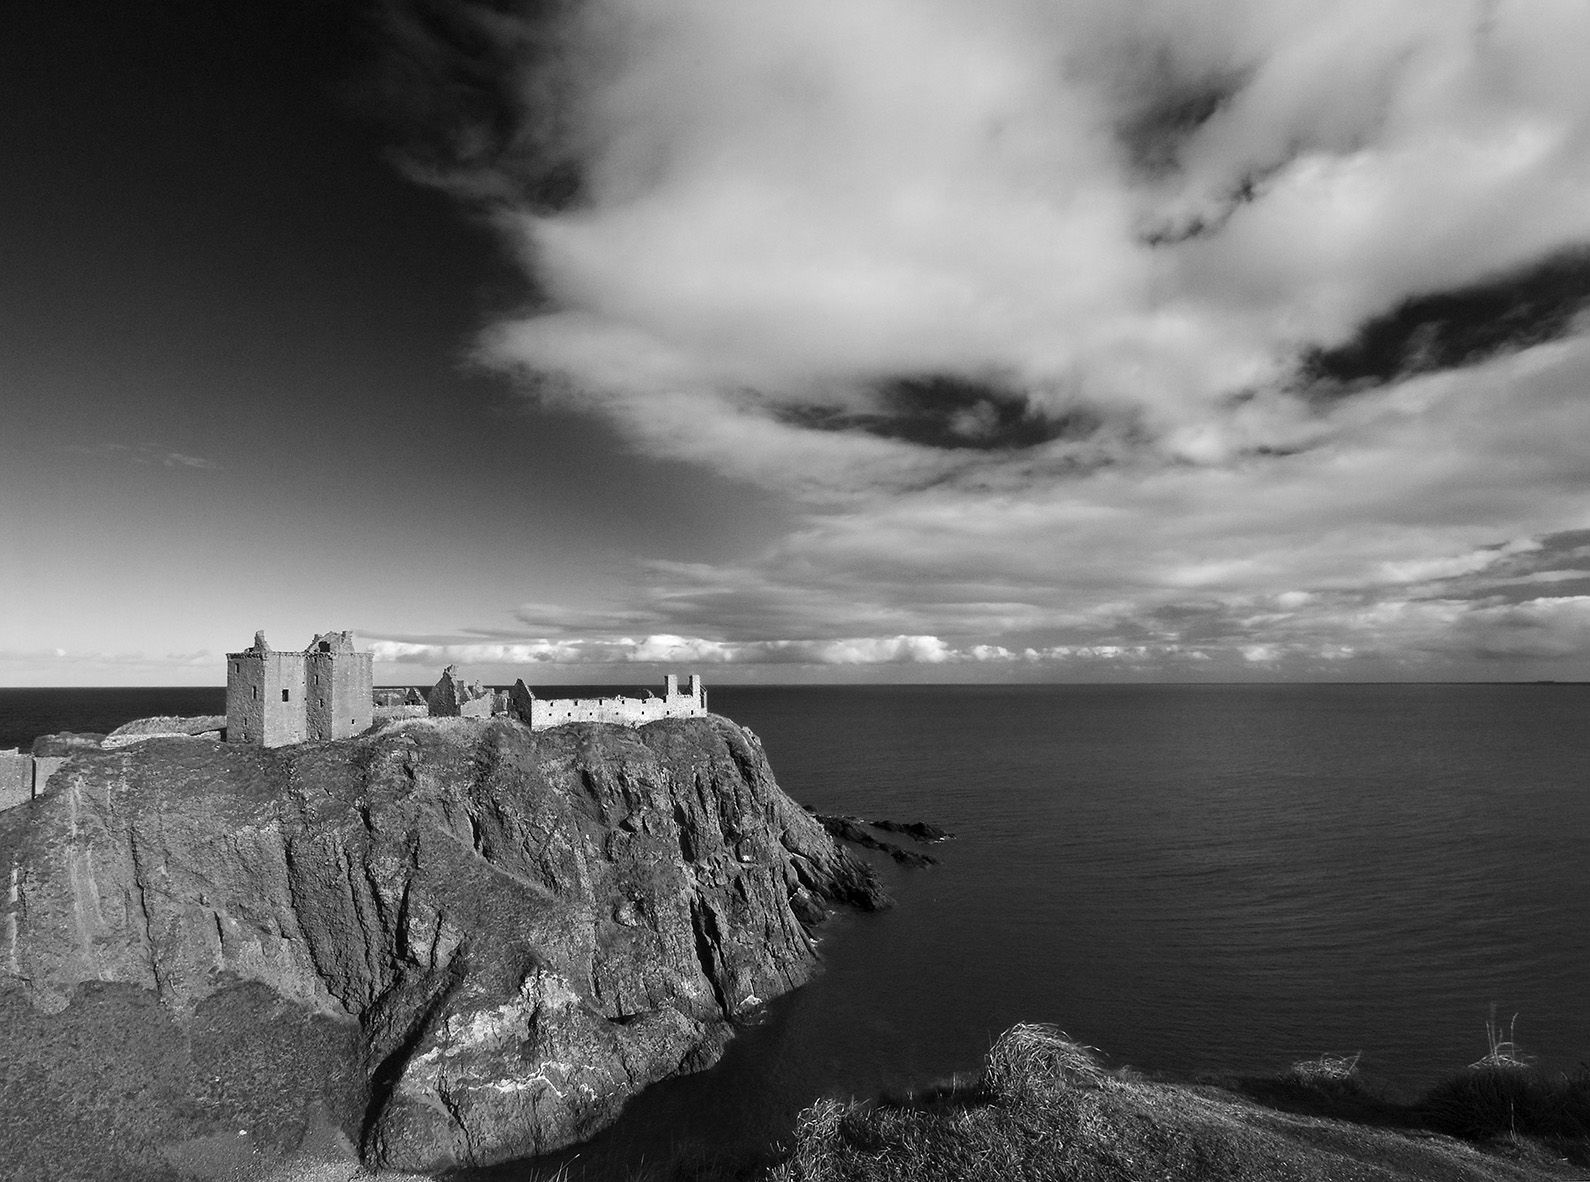 Dunnottar Castle in Scotland, UK